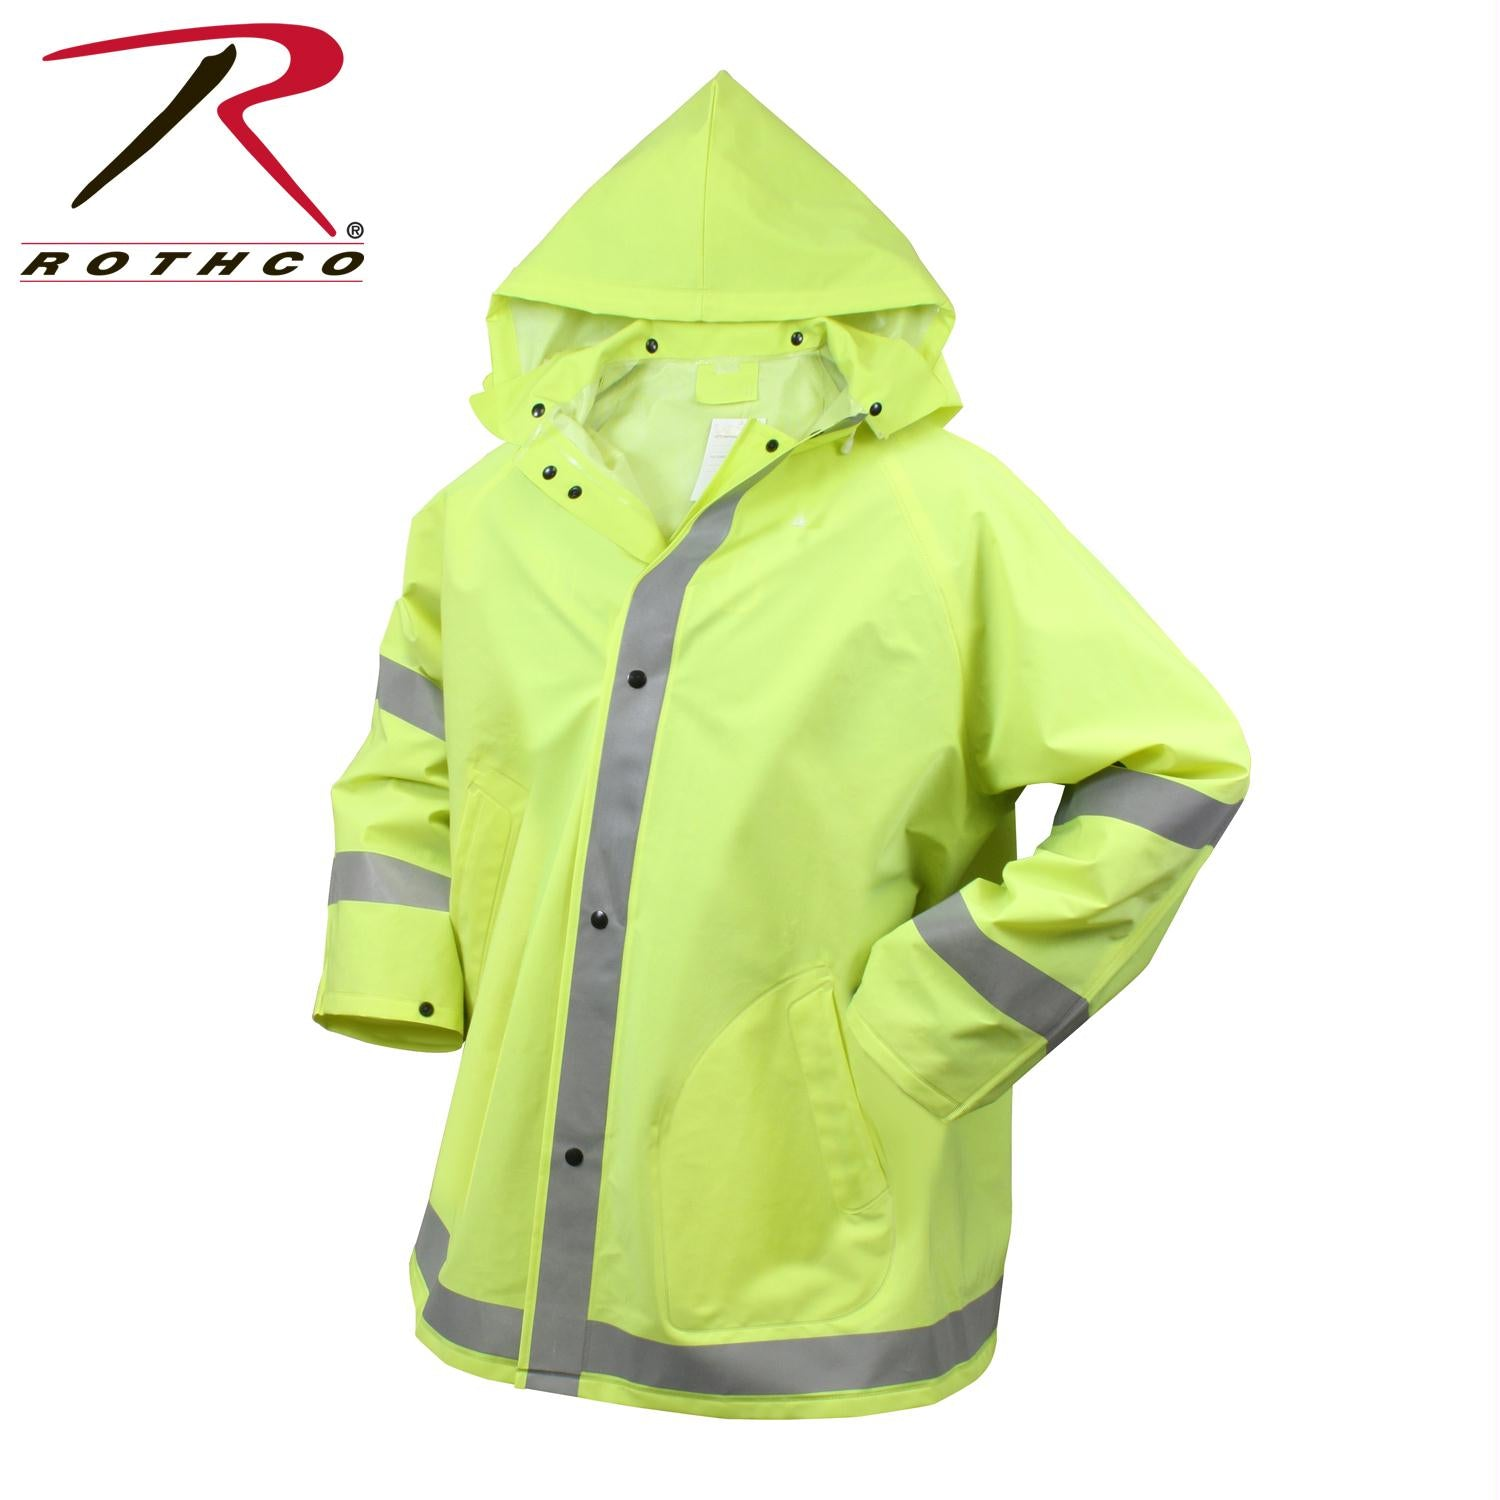 Rothco Safety Reflective Rain Jacket - Safety Green / S